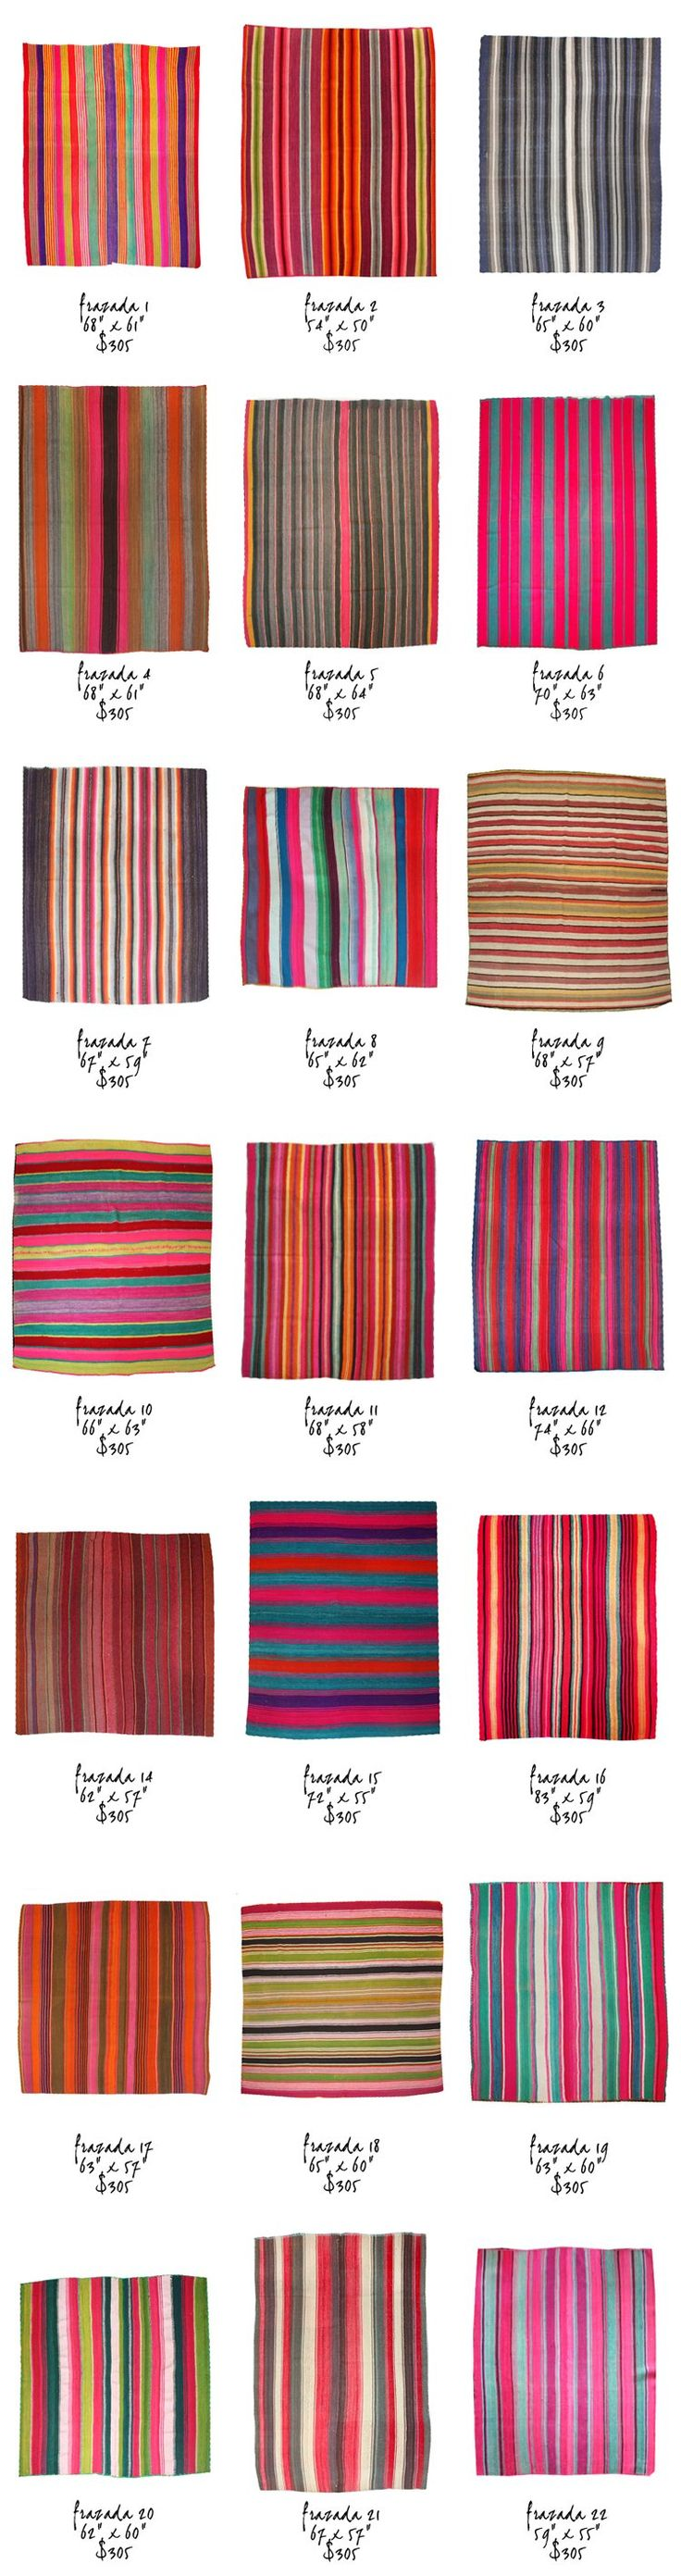 Frazada blankets from Bolivia - just in at   http://www.lavivahome.com